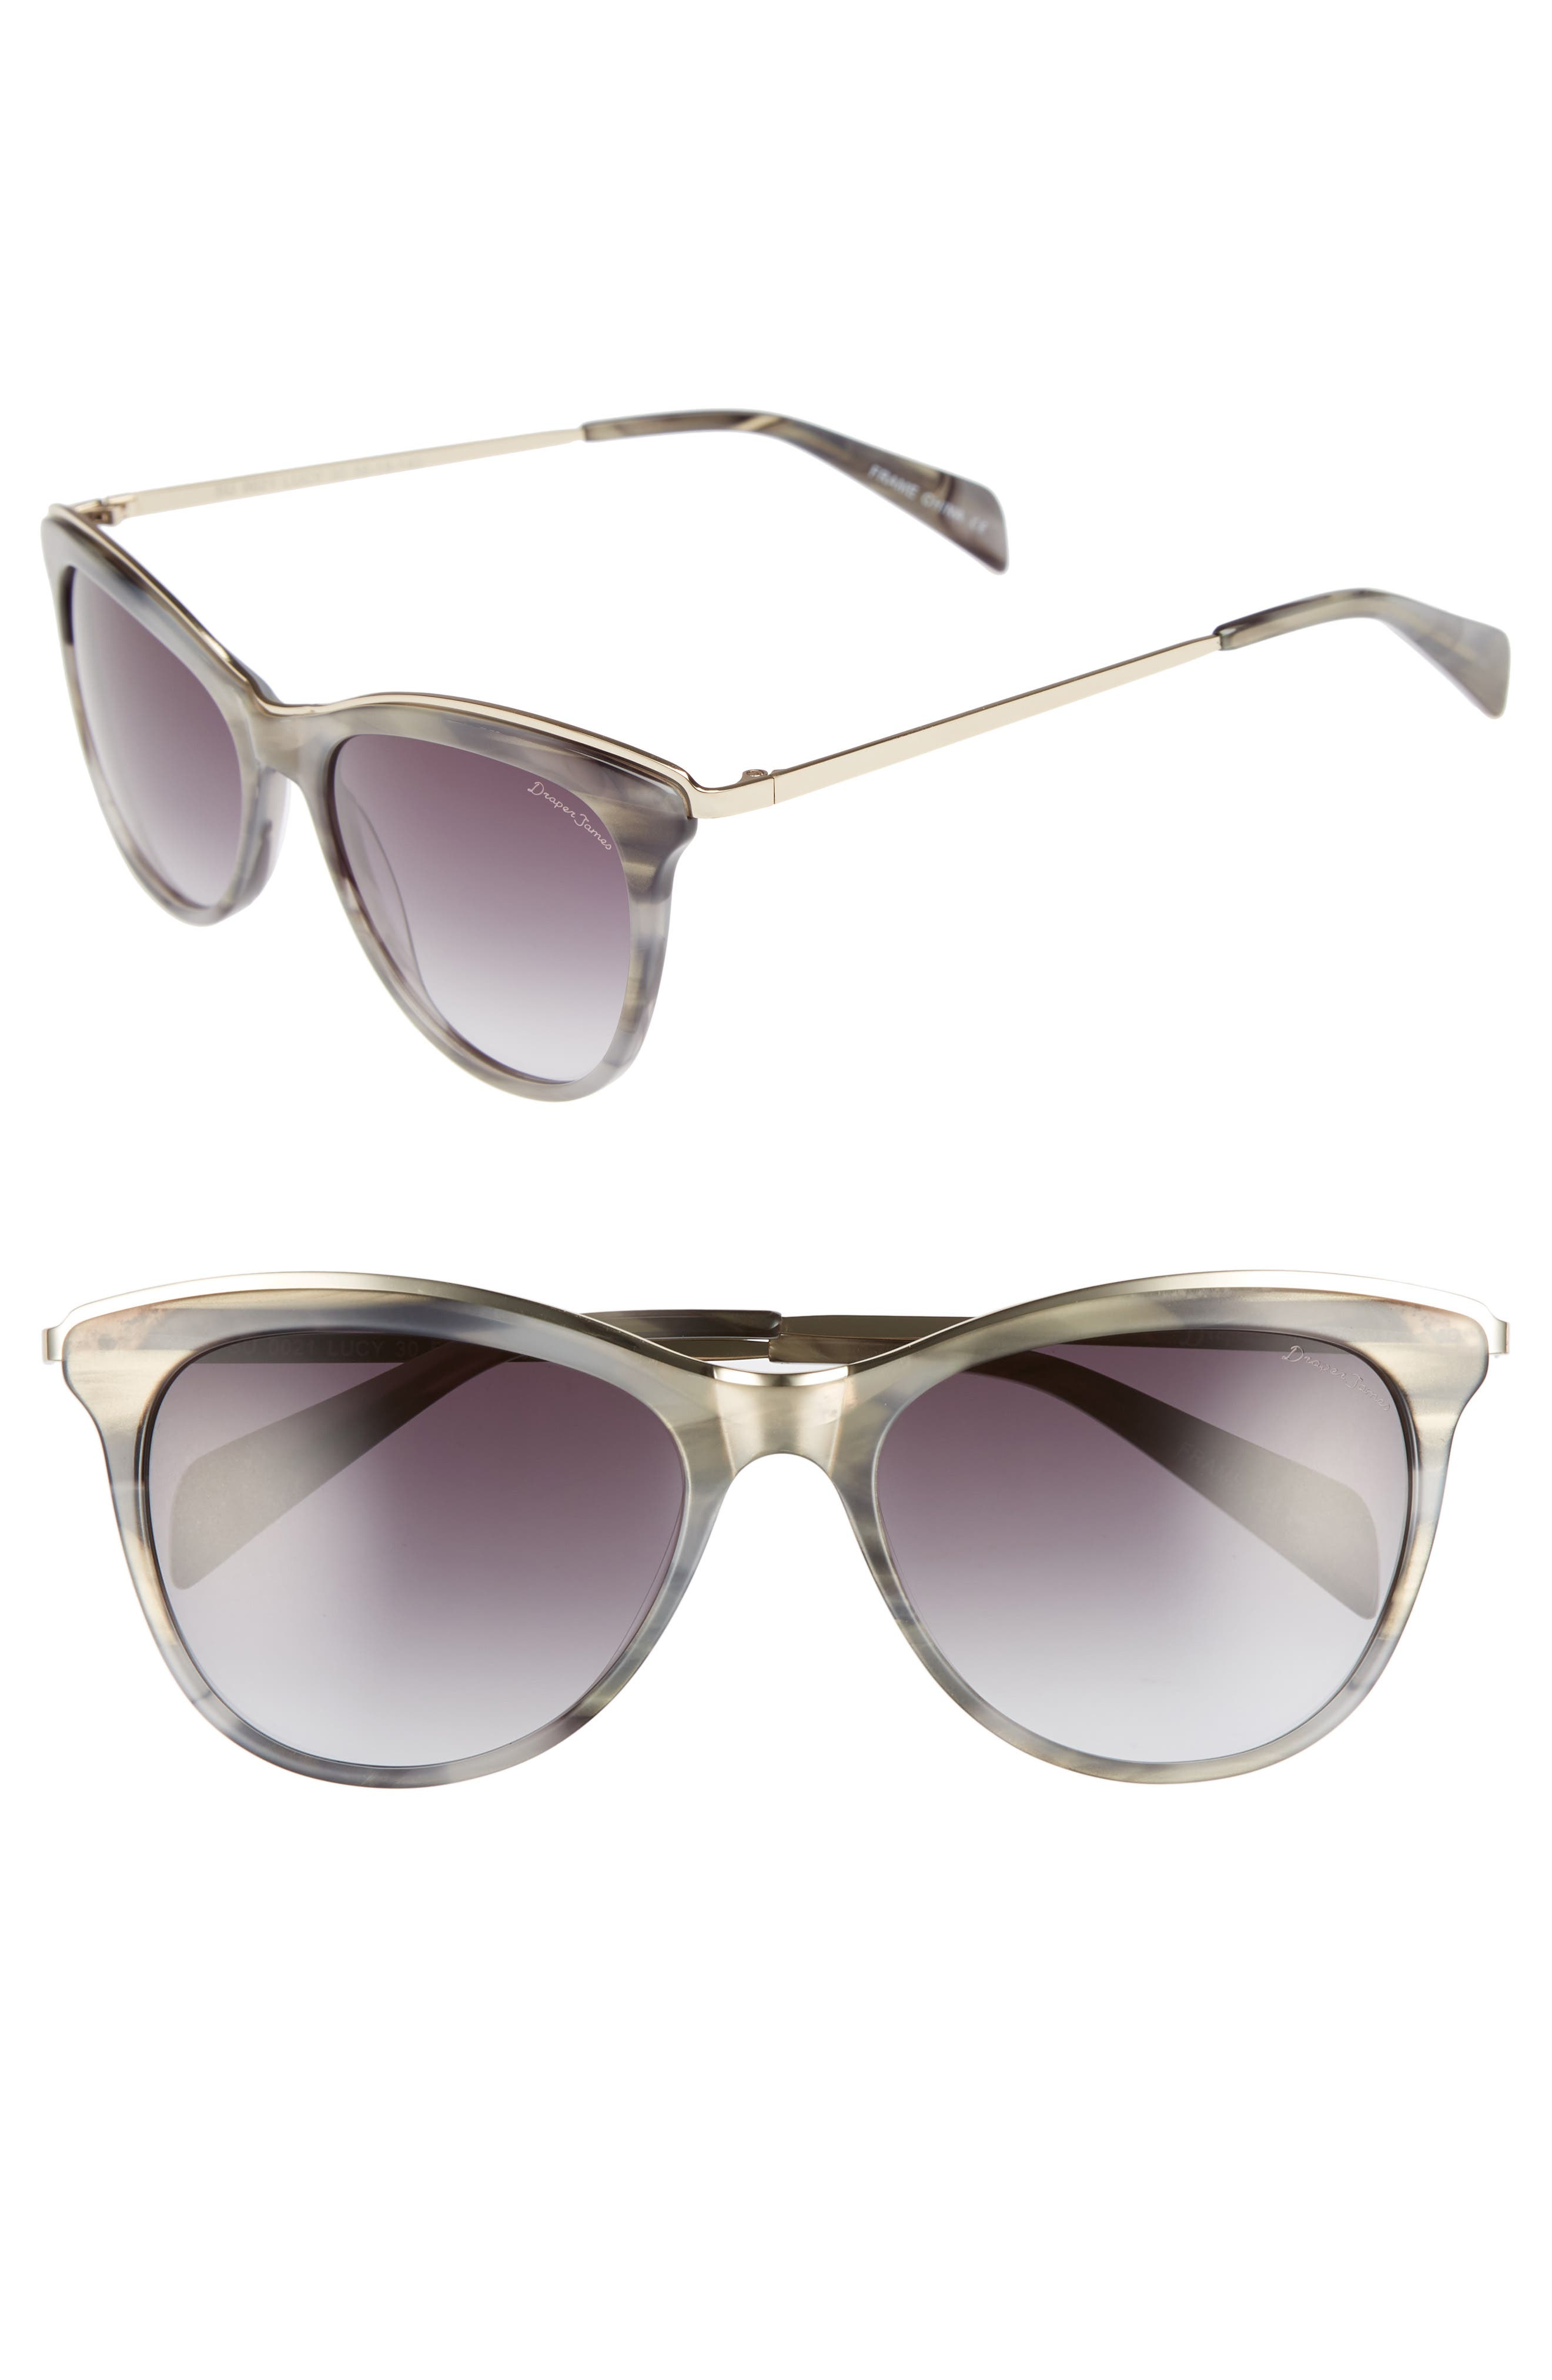 56mm Cat Eye Sunglasses,                         Main,                         color, GREY